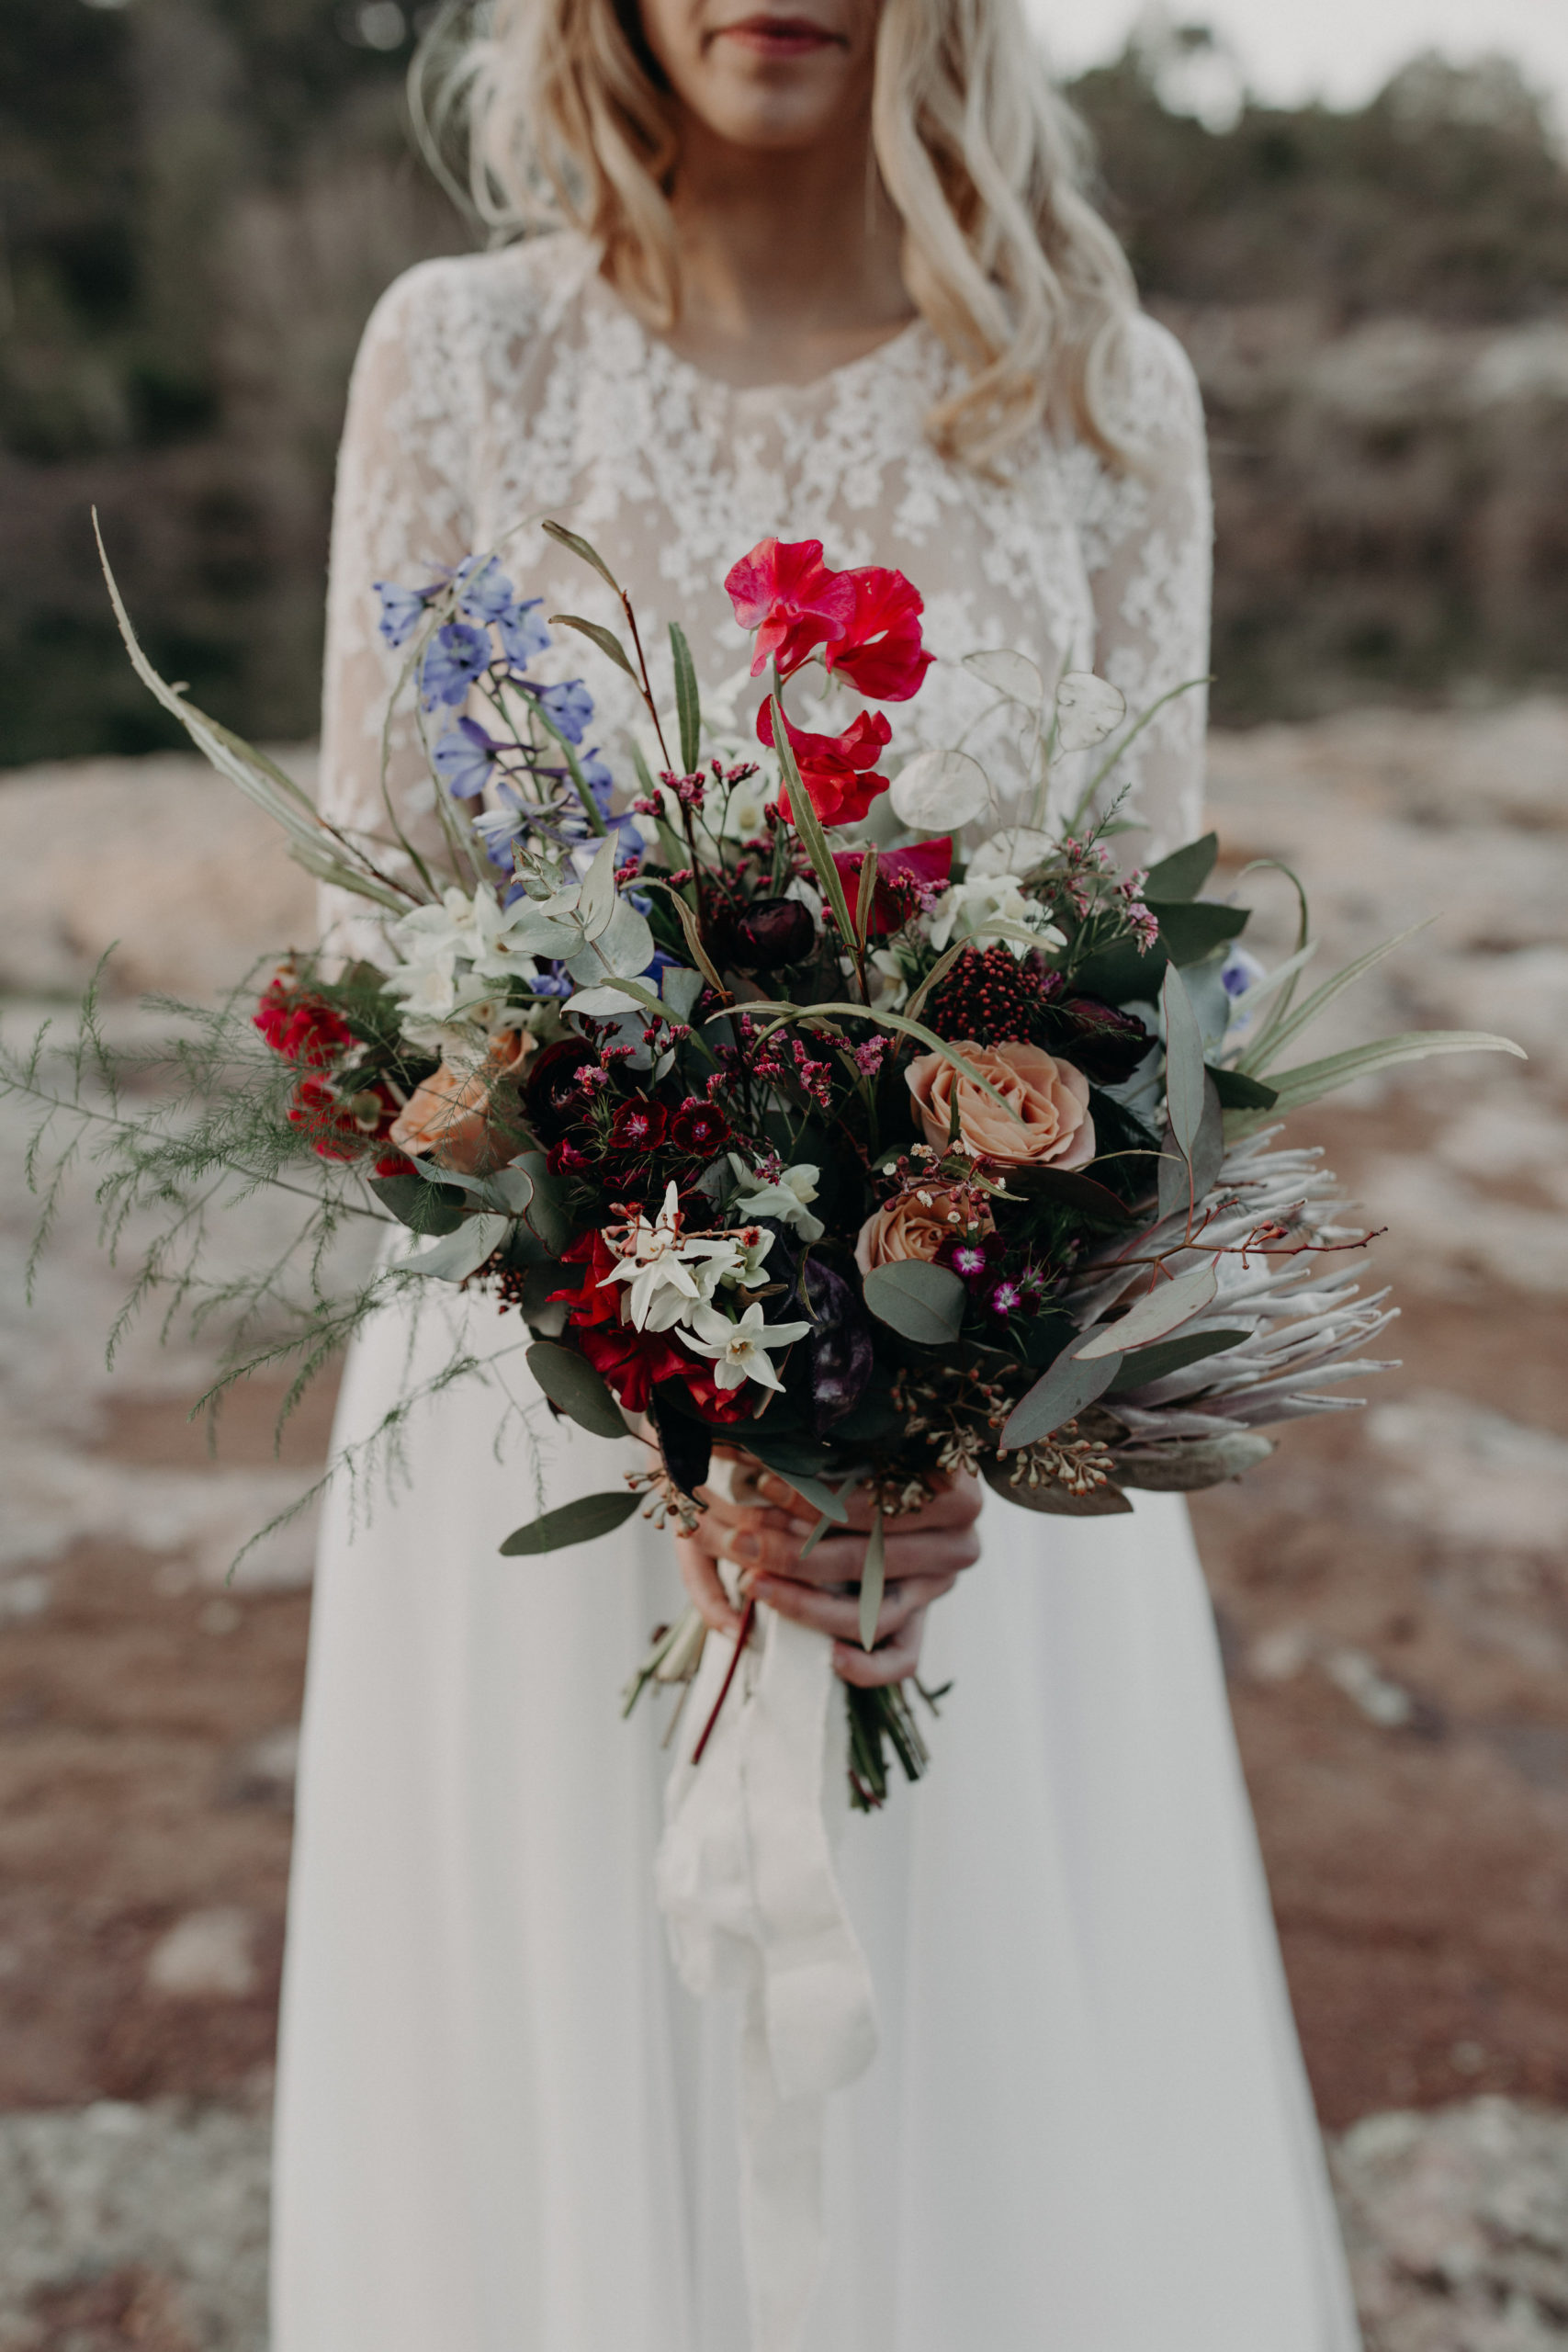 View More: http://lesleysphotography.pass.us/marine-maxime-elopement